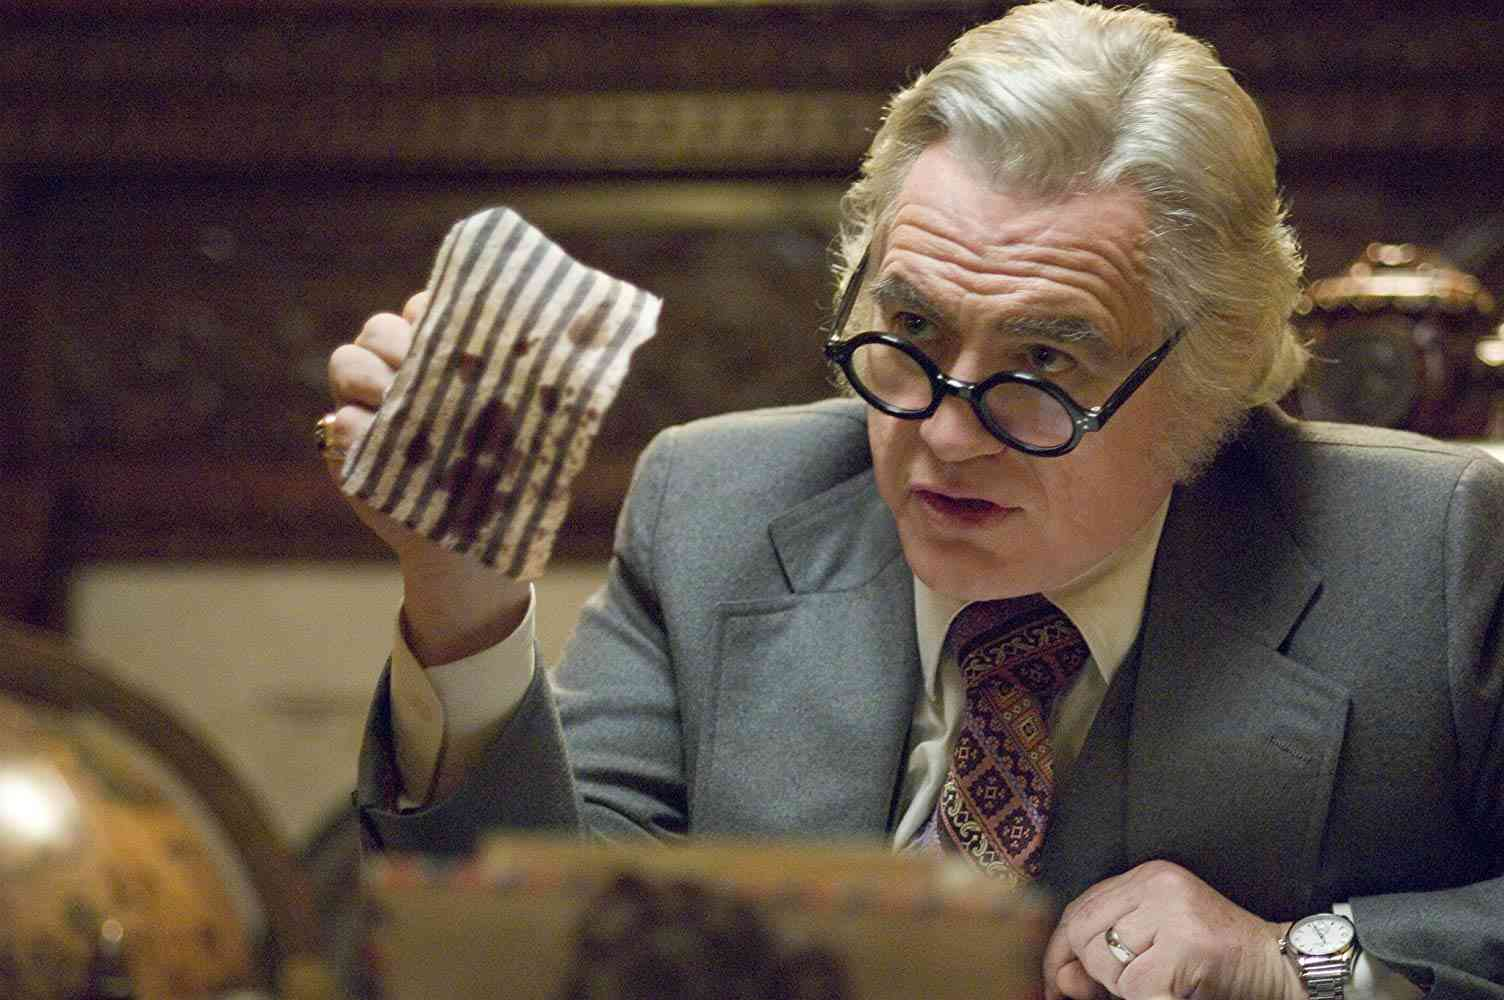 Brian Cox as Melvin Belli in Zodiac (2007). Courtesy Paramount Pictures.